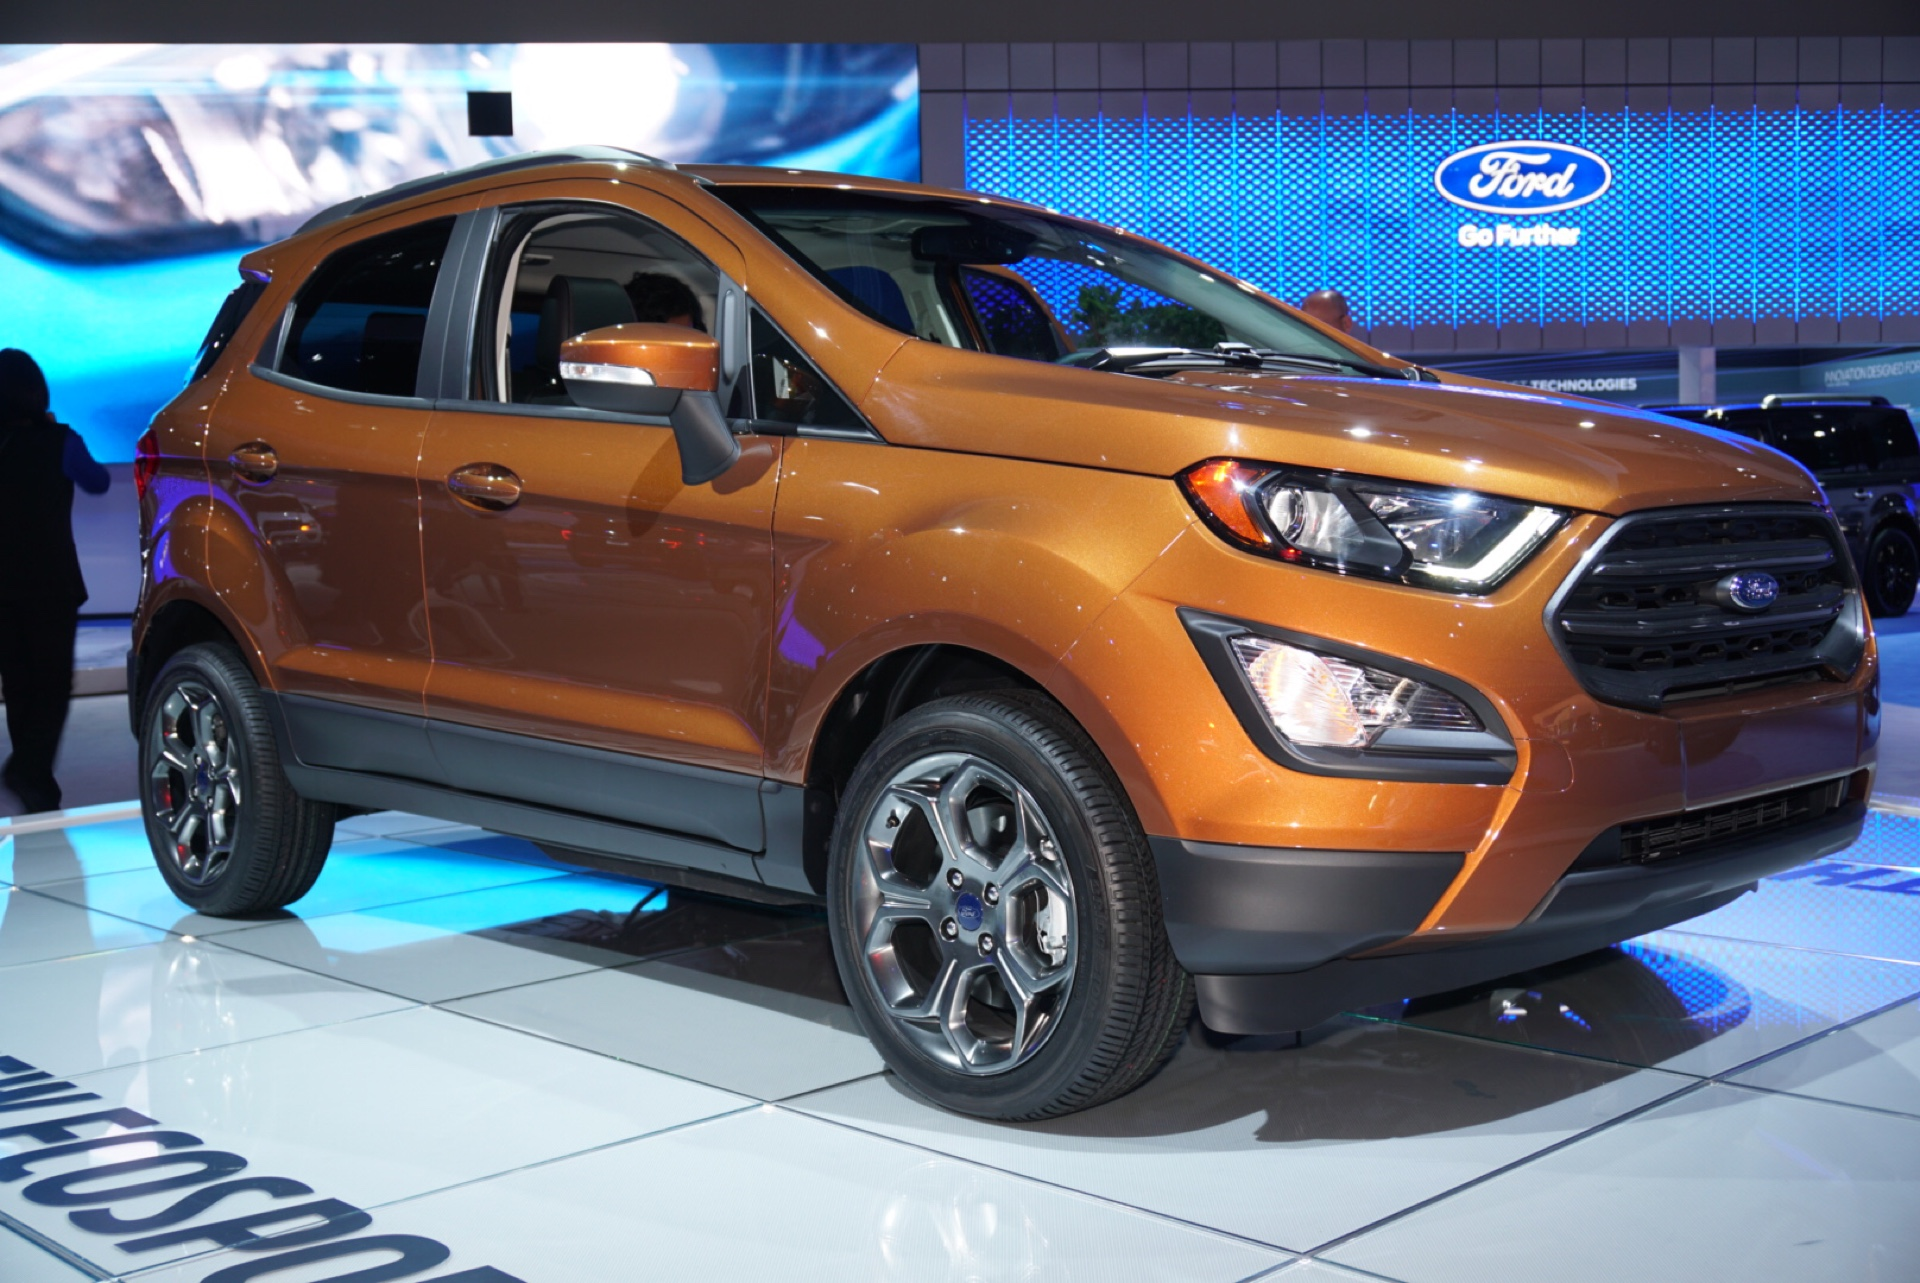 Ford Ecosport subcompact SUV finally debuts in US